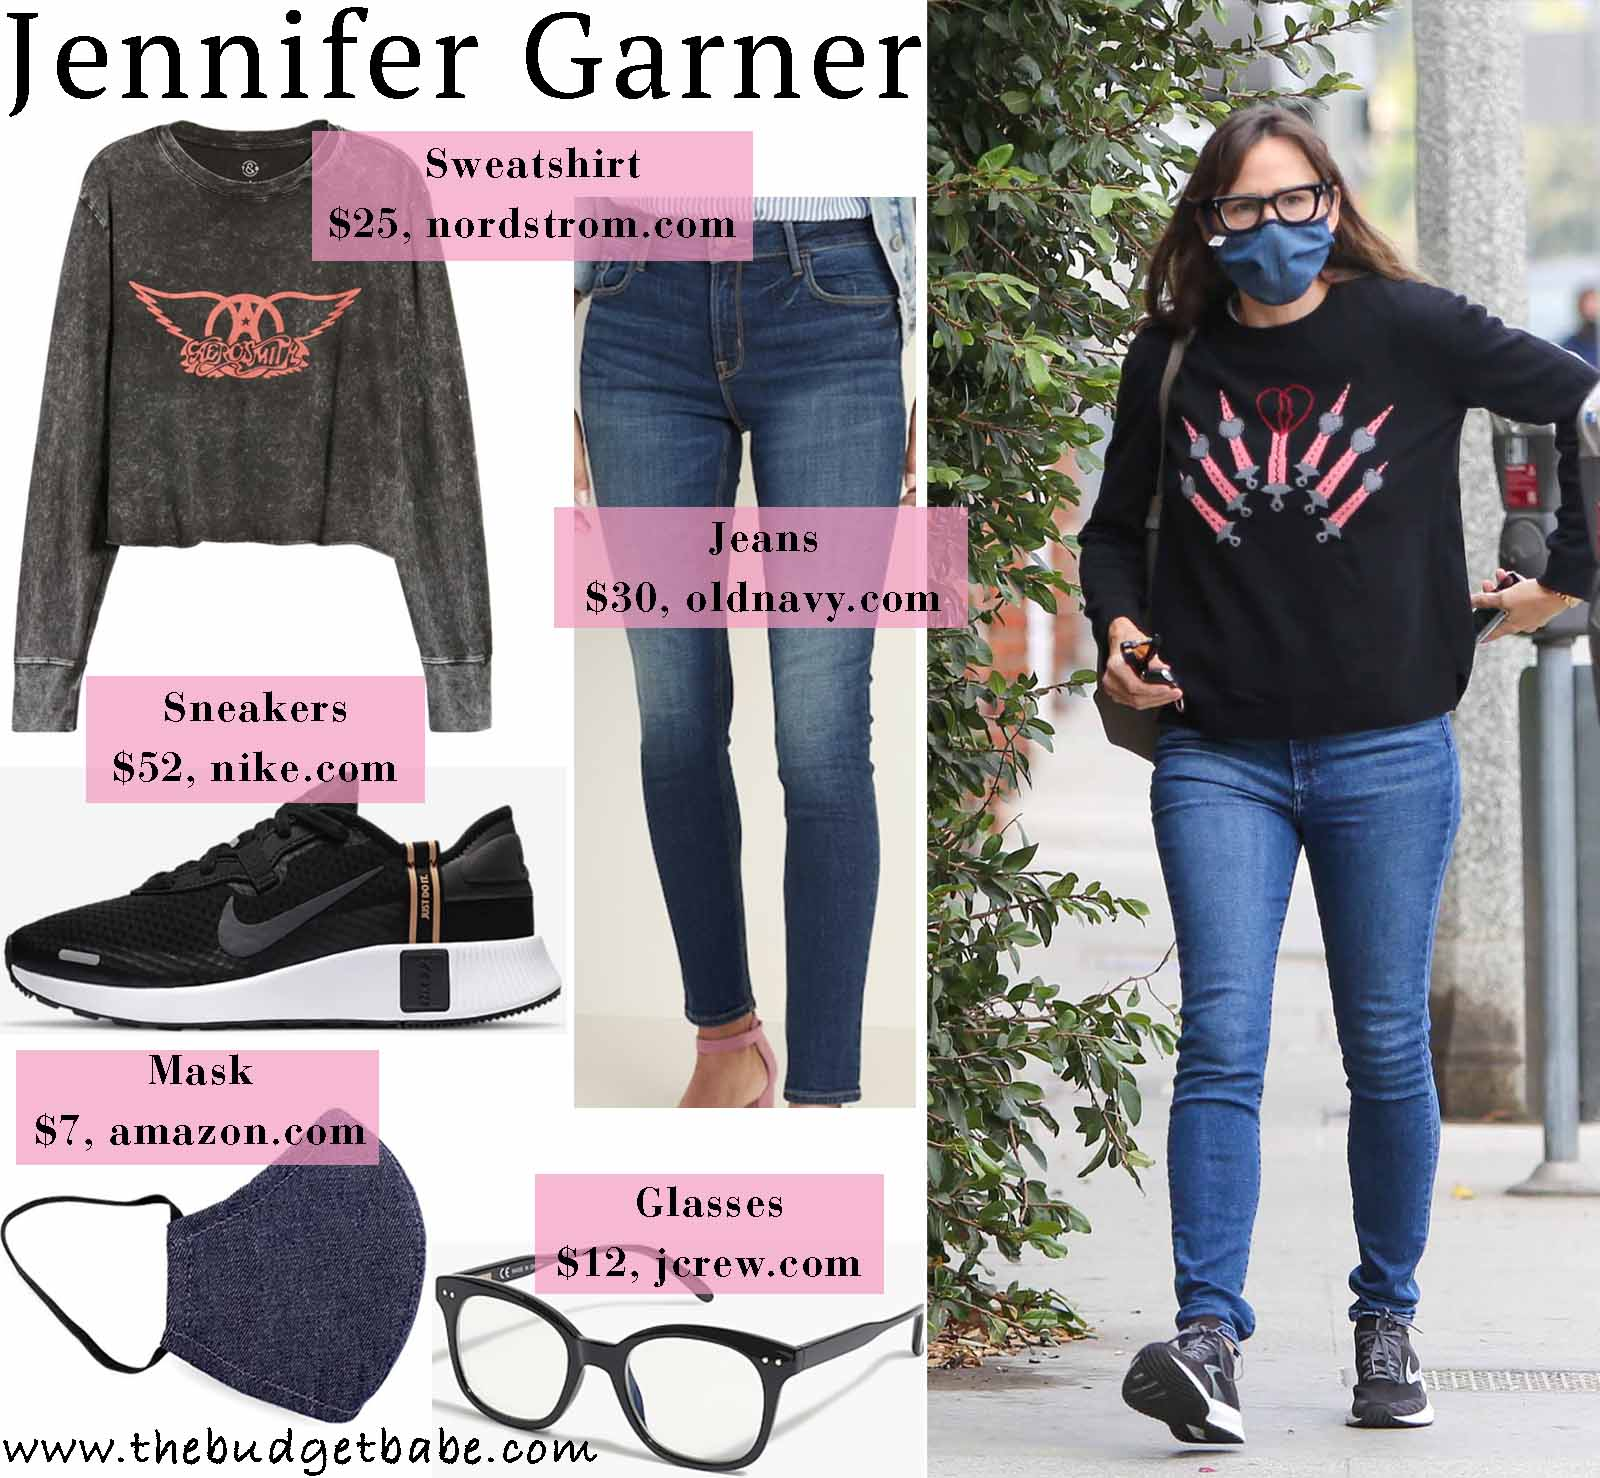 Jennifer Garner's casual holiday style!